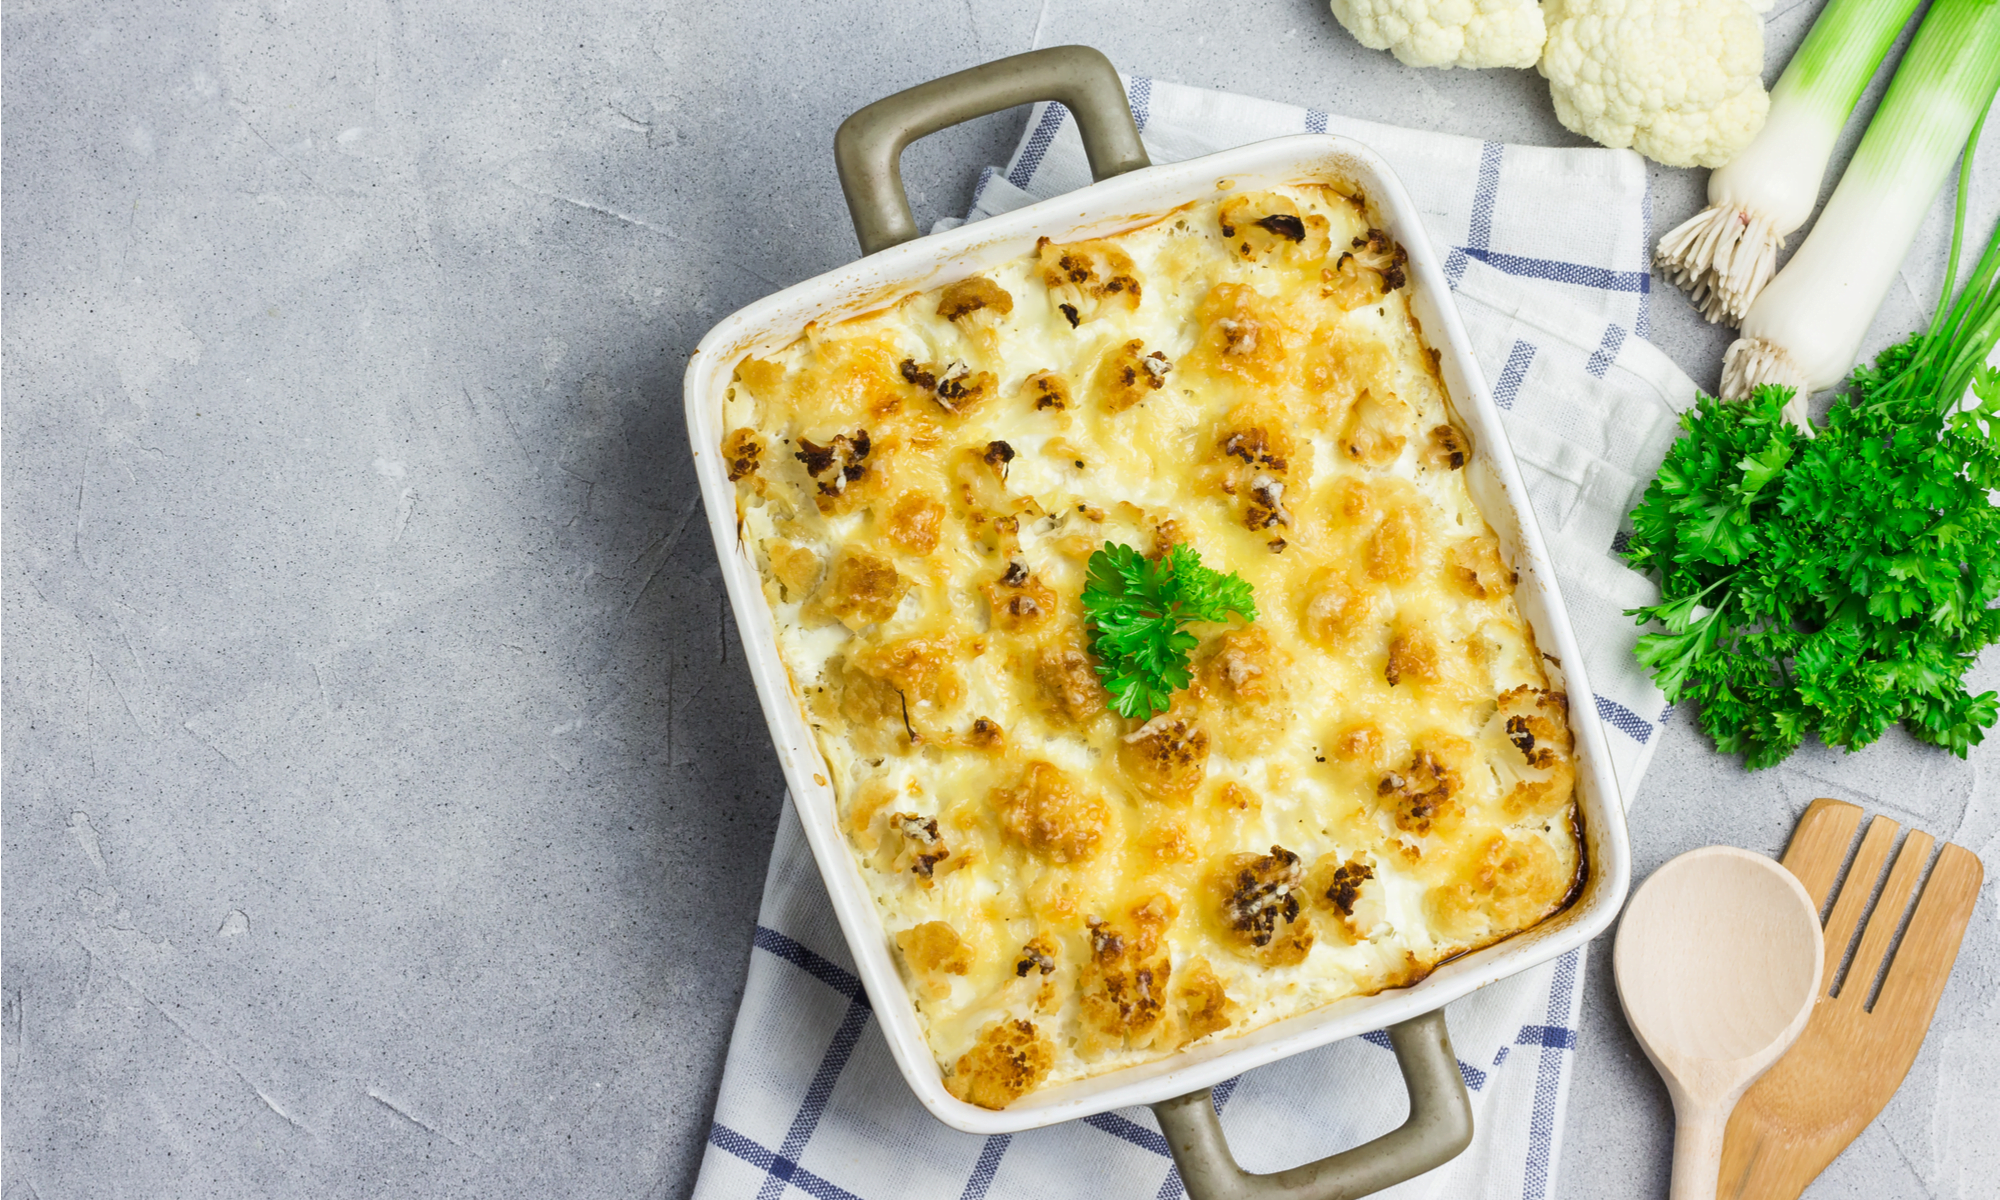 SPUD-IFIED FAMILY HOLIDAY CLASSICS: ROUND 2